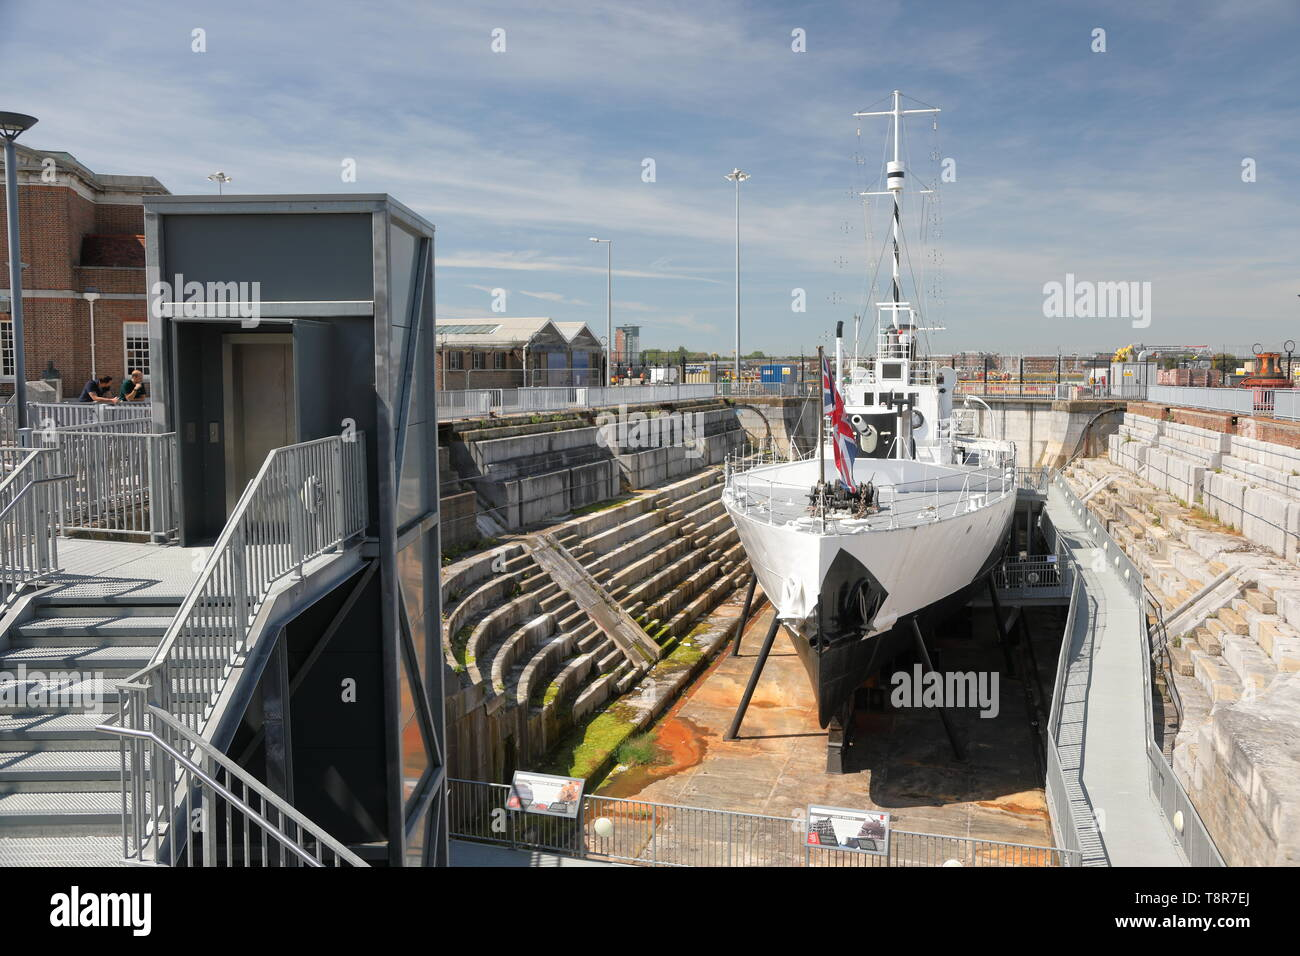 Portsmouth Historic Dockyard, UK. Stock Photo